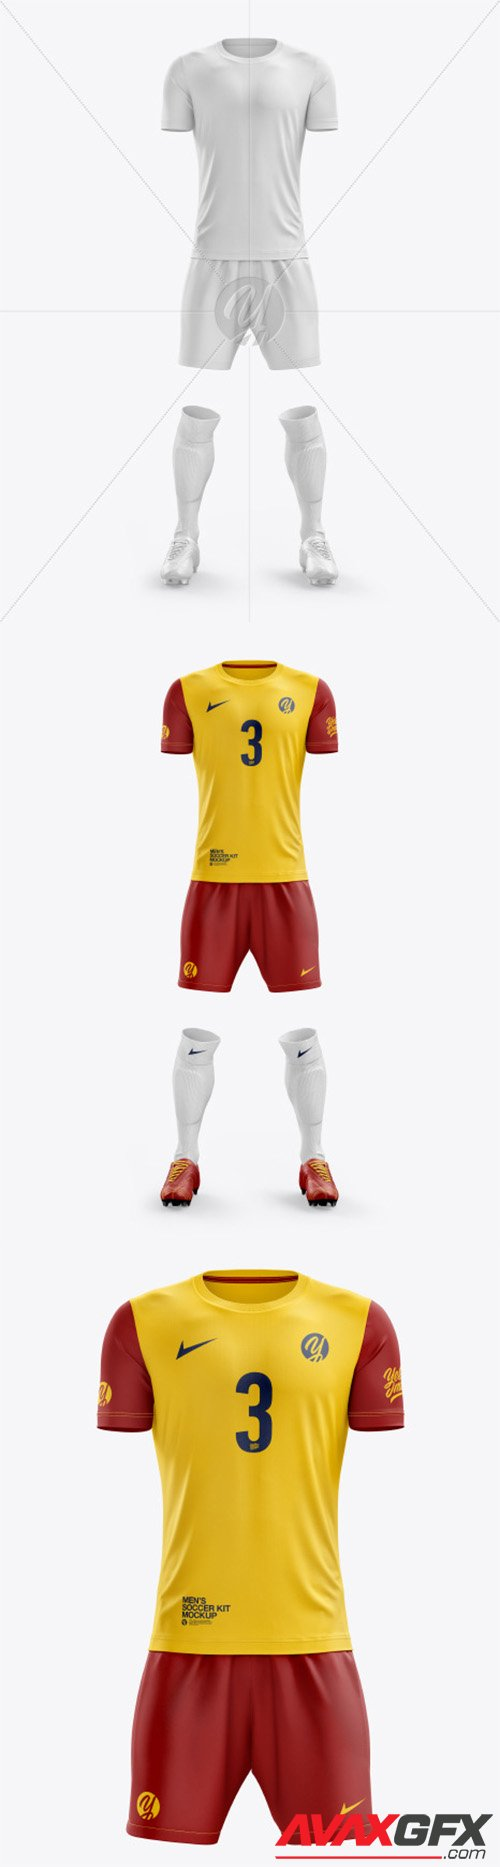 Men's Full Soccer Kit with Crew Neck Jersey mockup (Front View) 55756